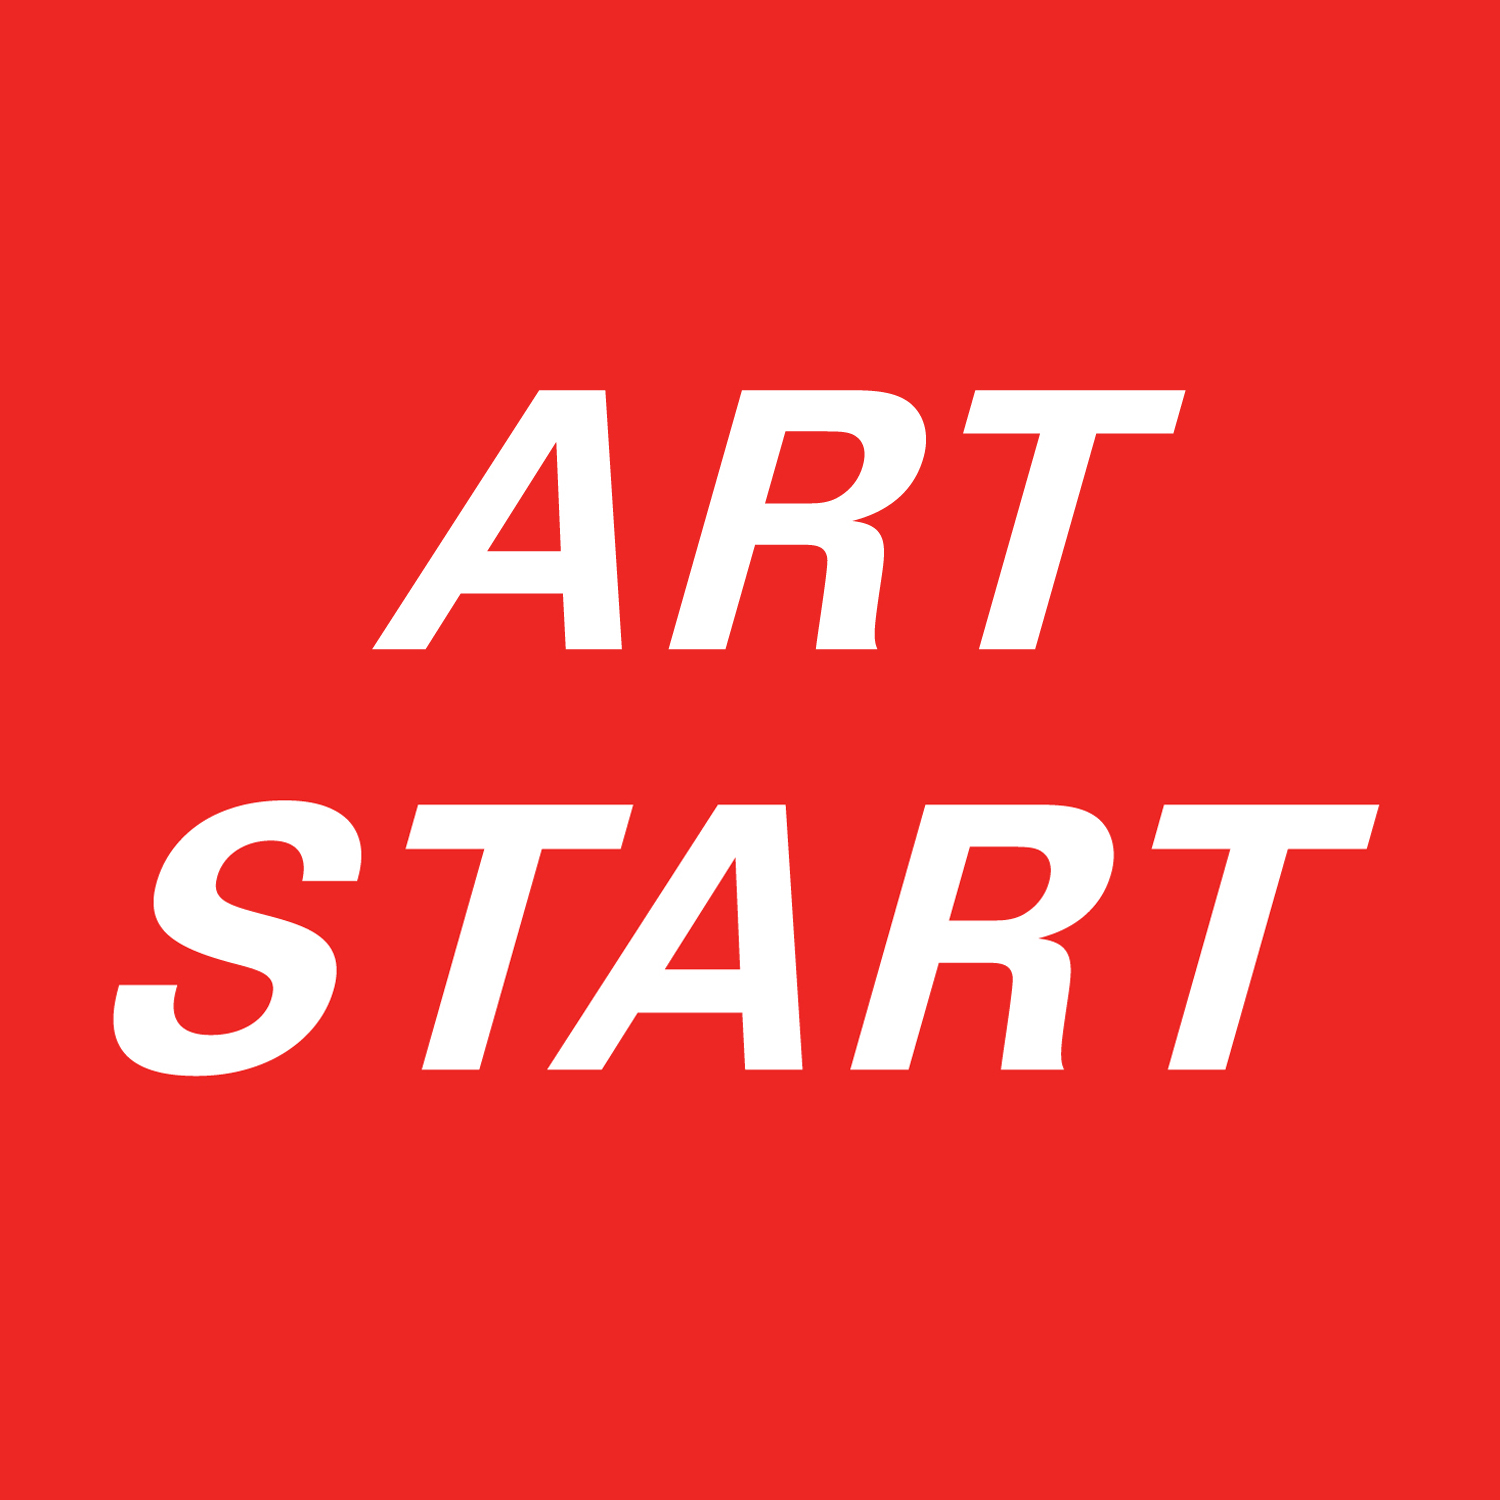 Associate Programs Manager Art Start